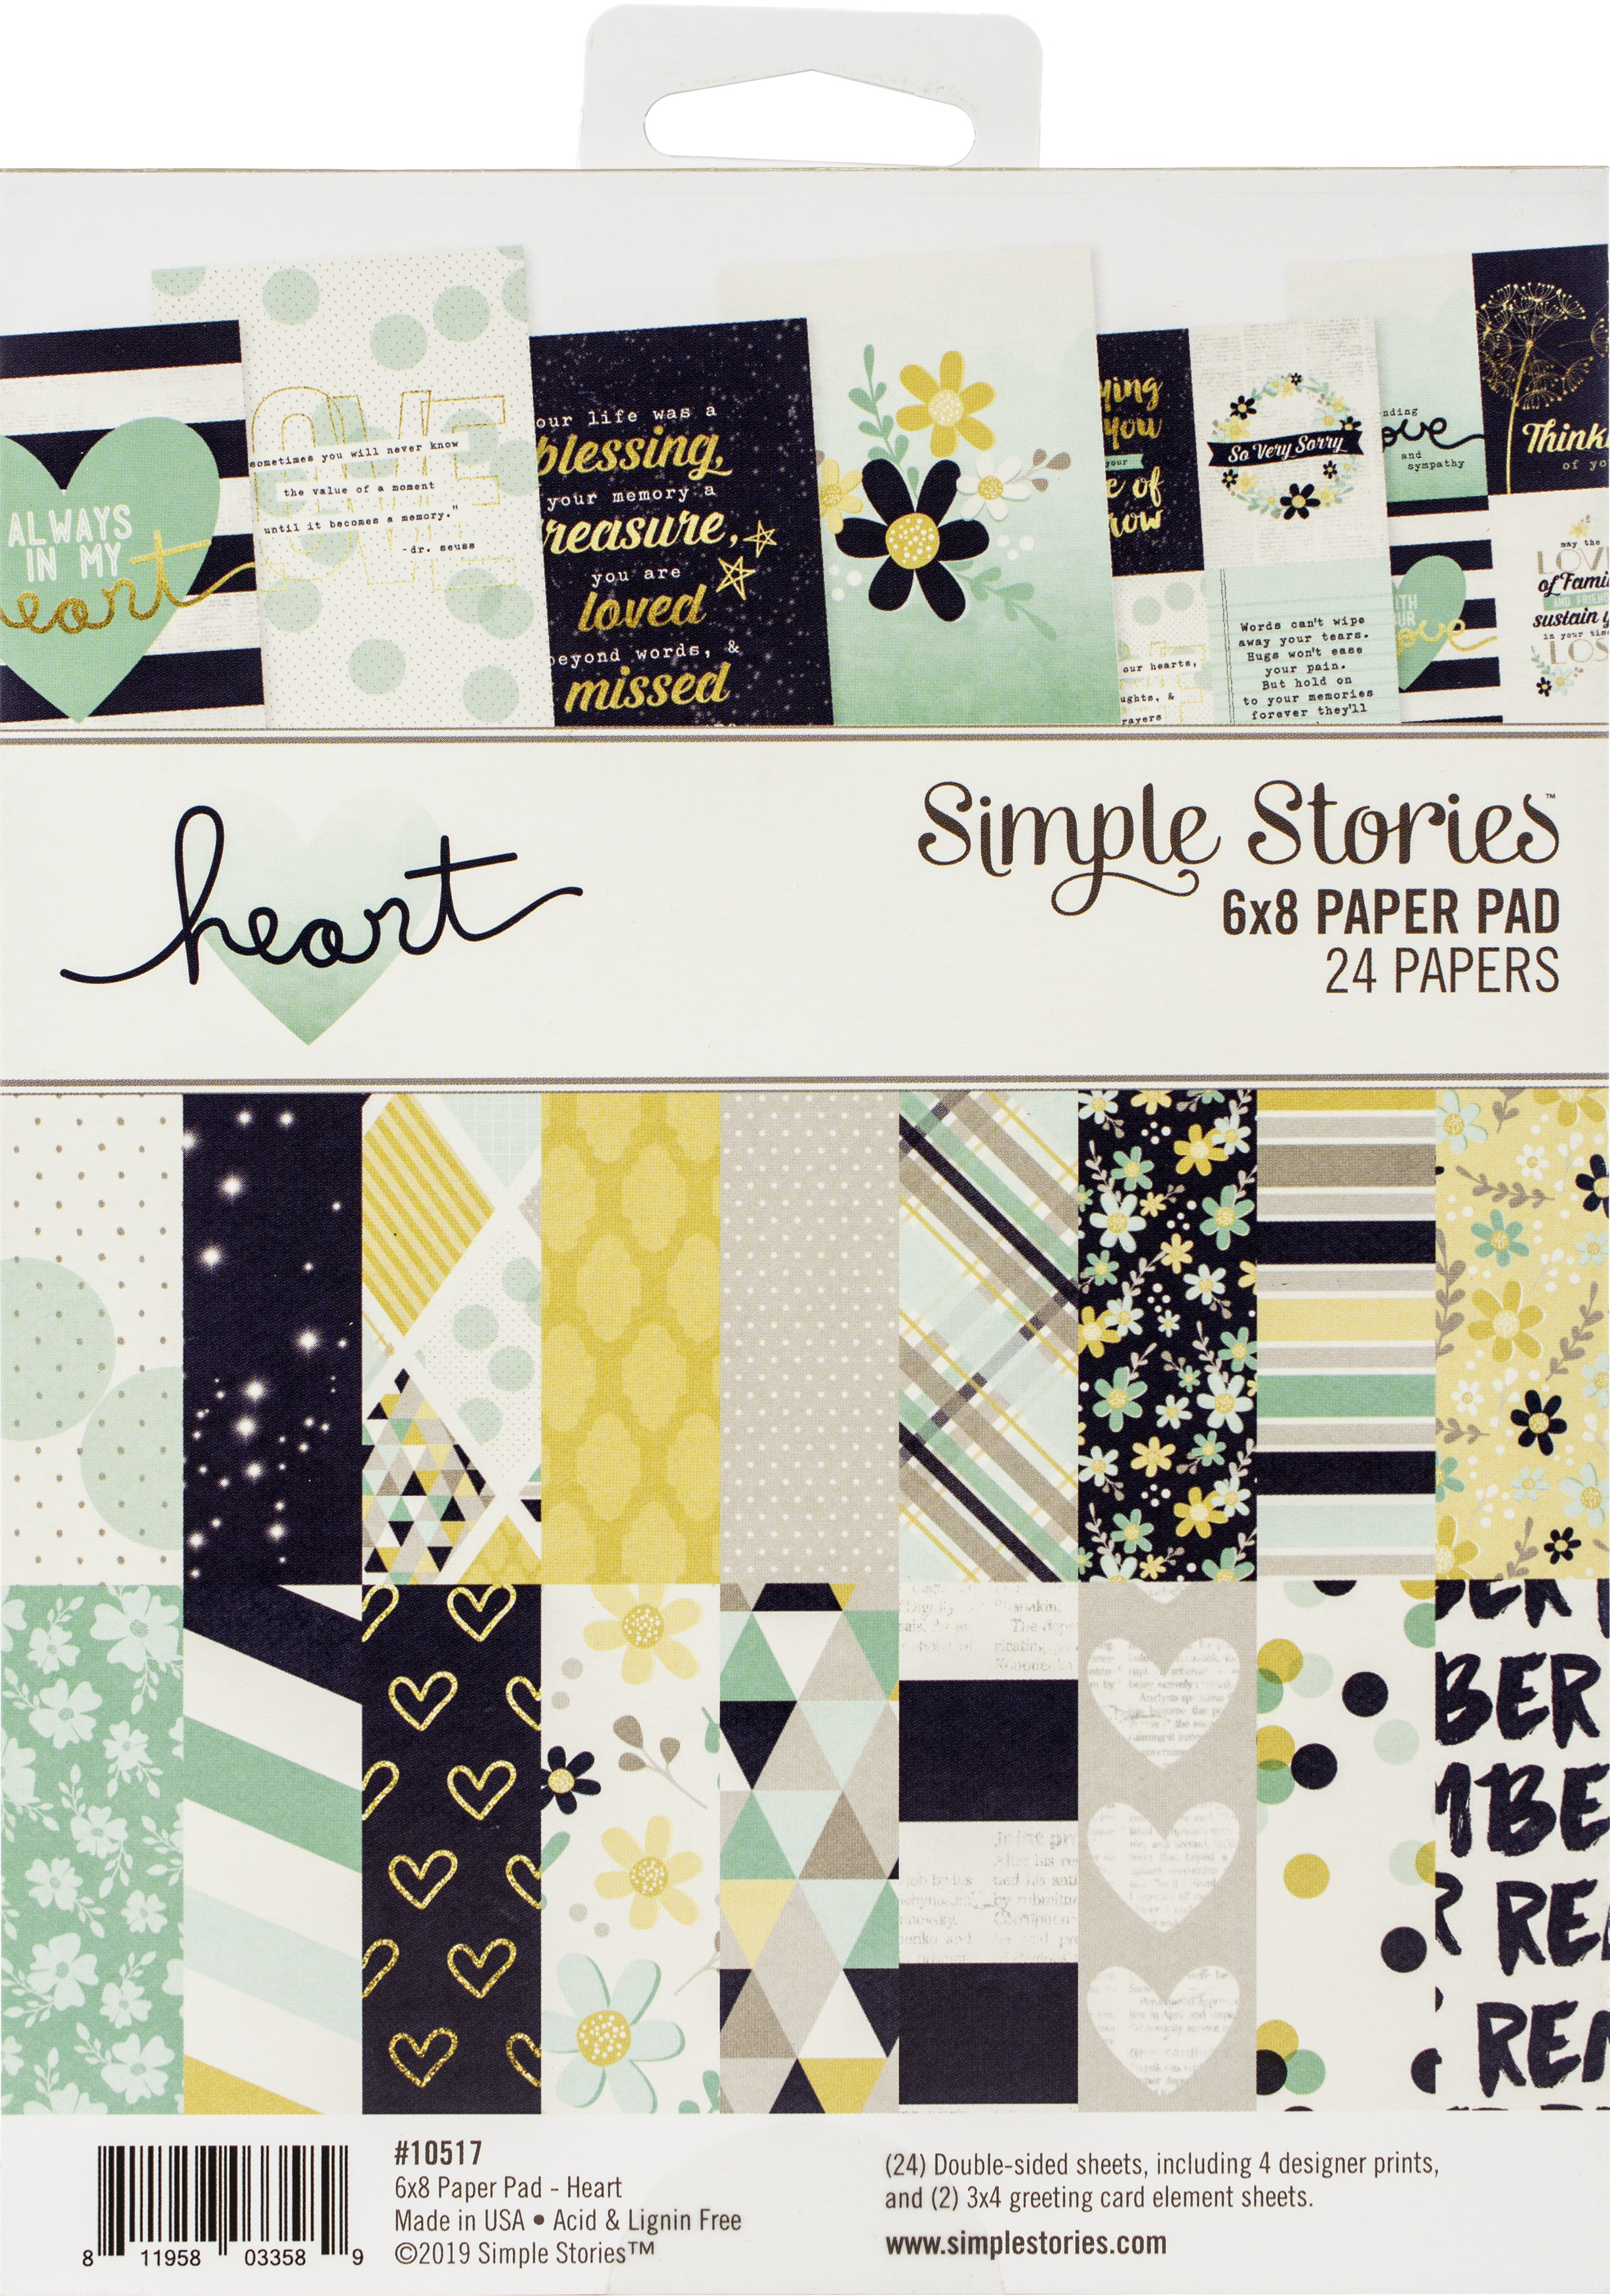 Simple Stories Double-Sided Paper Pad 6X8 24/Pkg-Heart, 8 Designs/3 Each